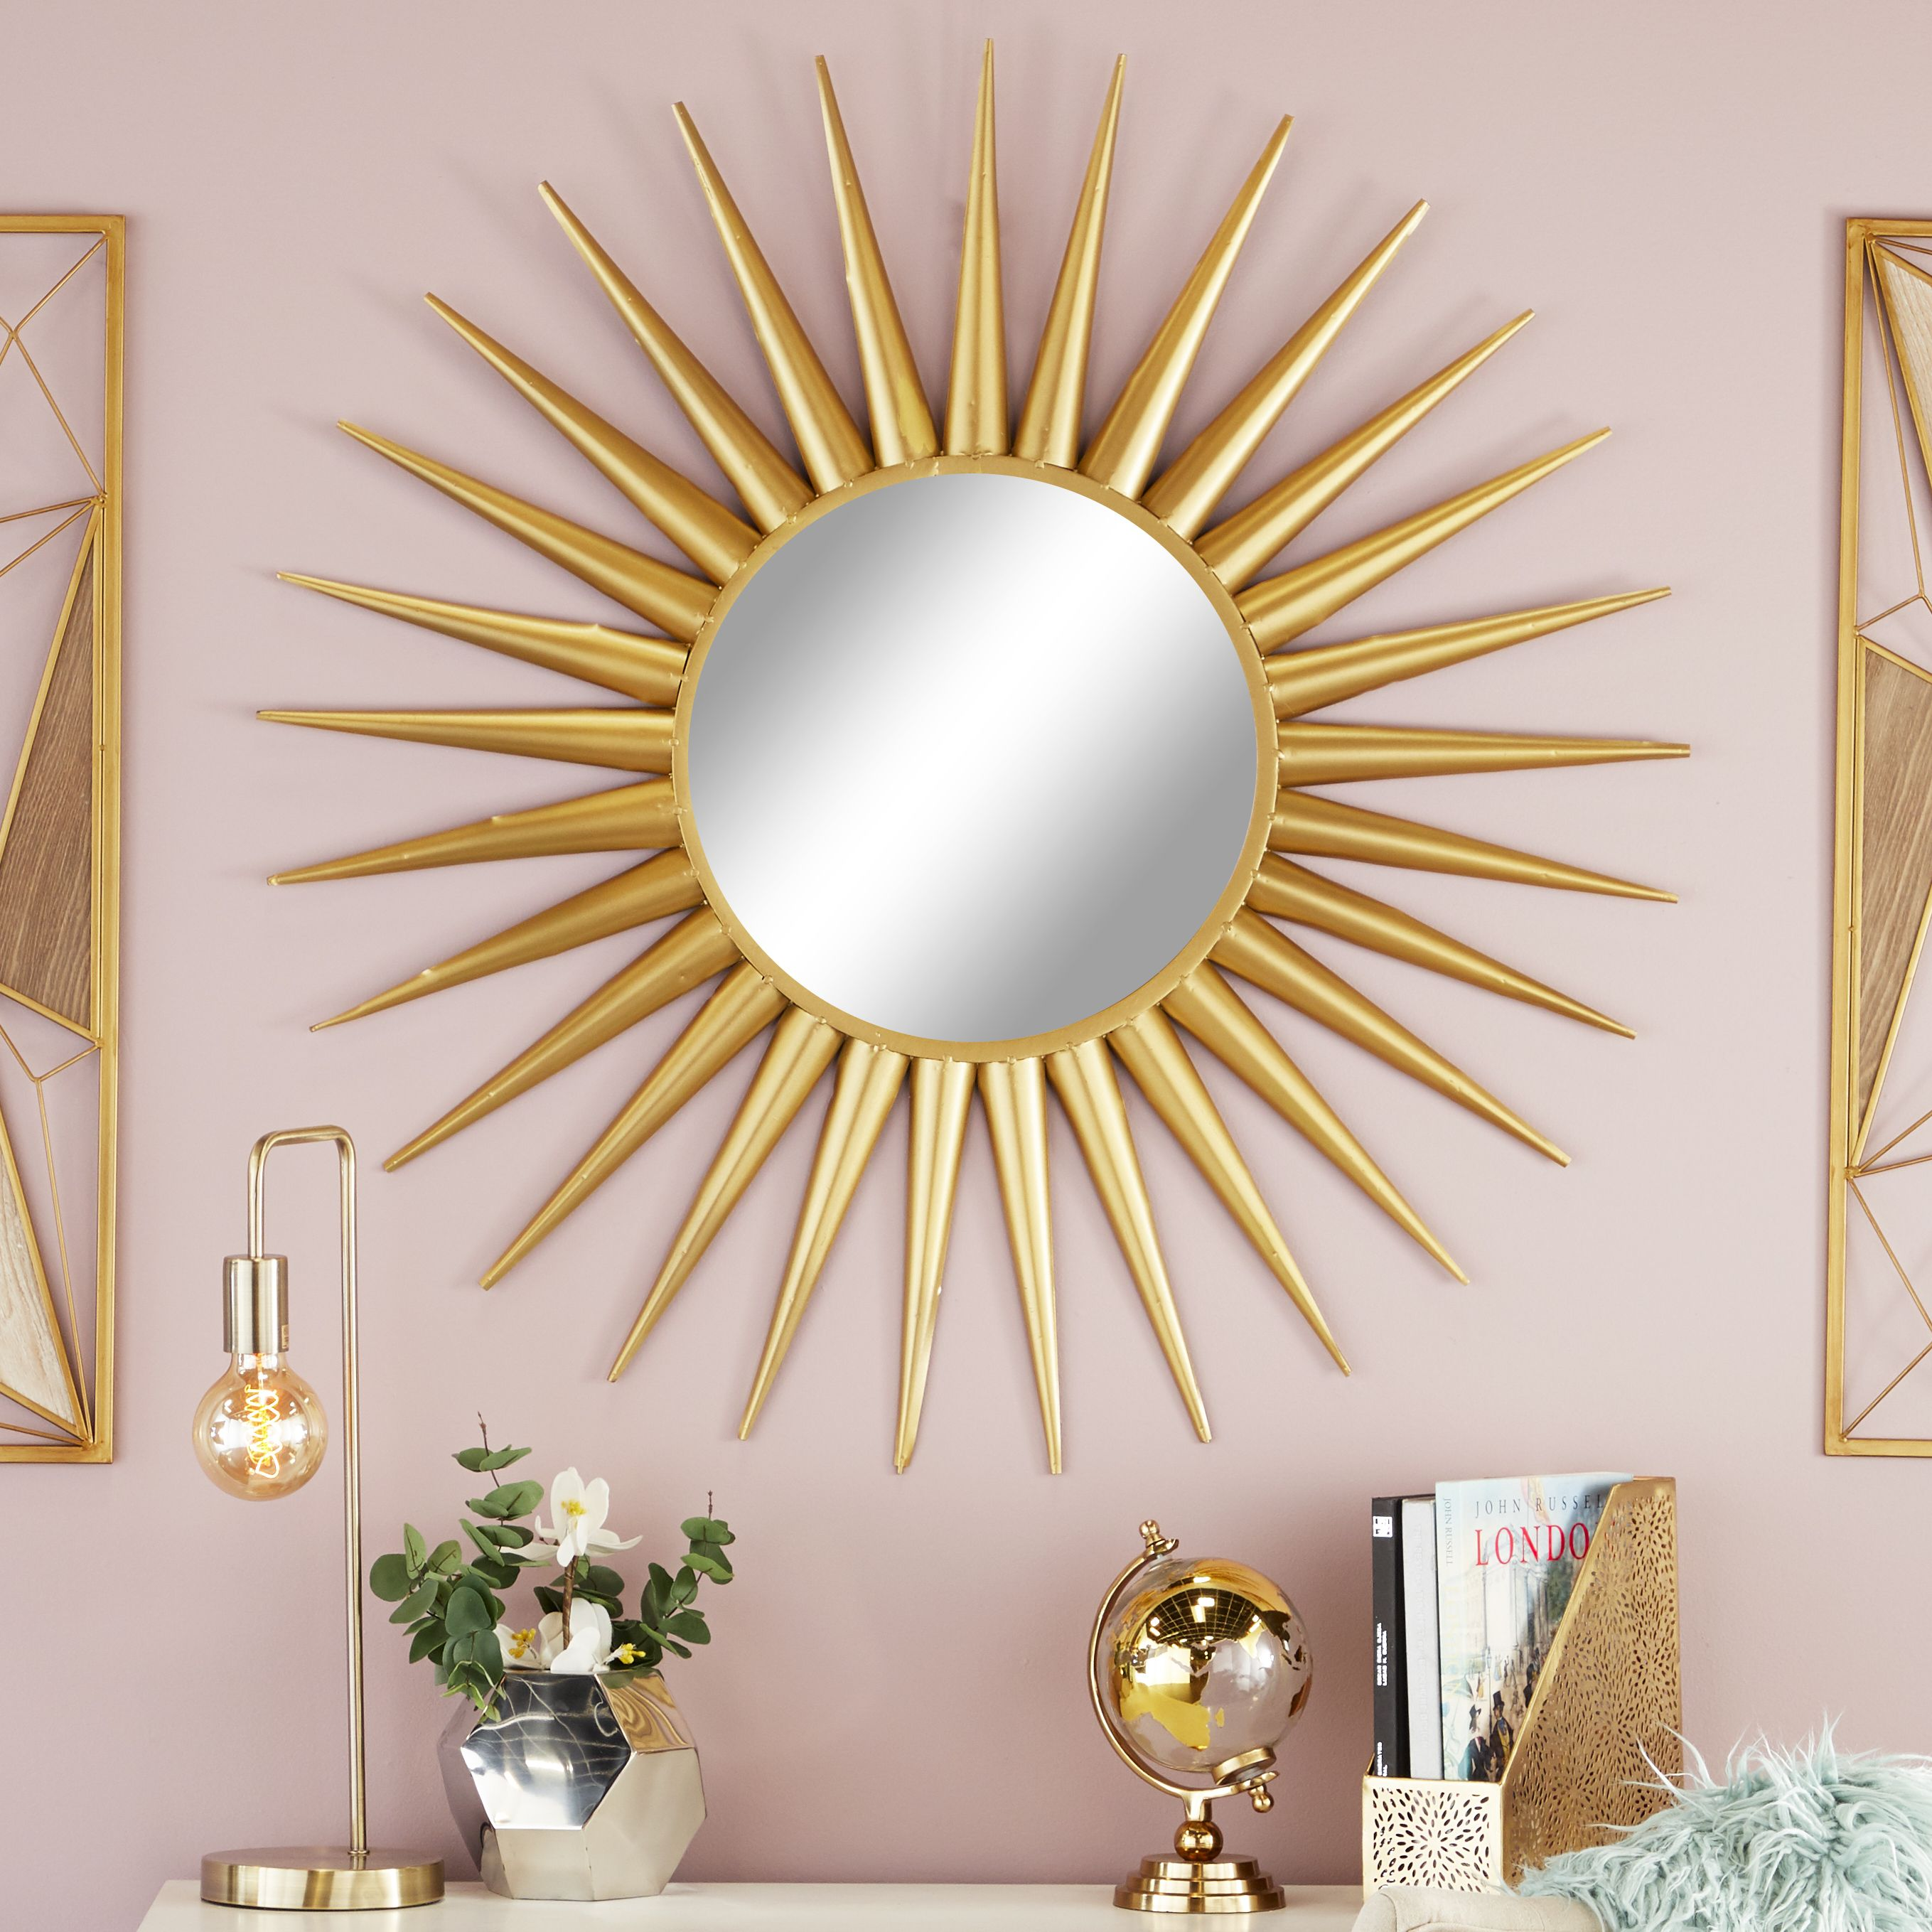 Cosmoliving by cosmopolitan glam style large round